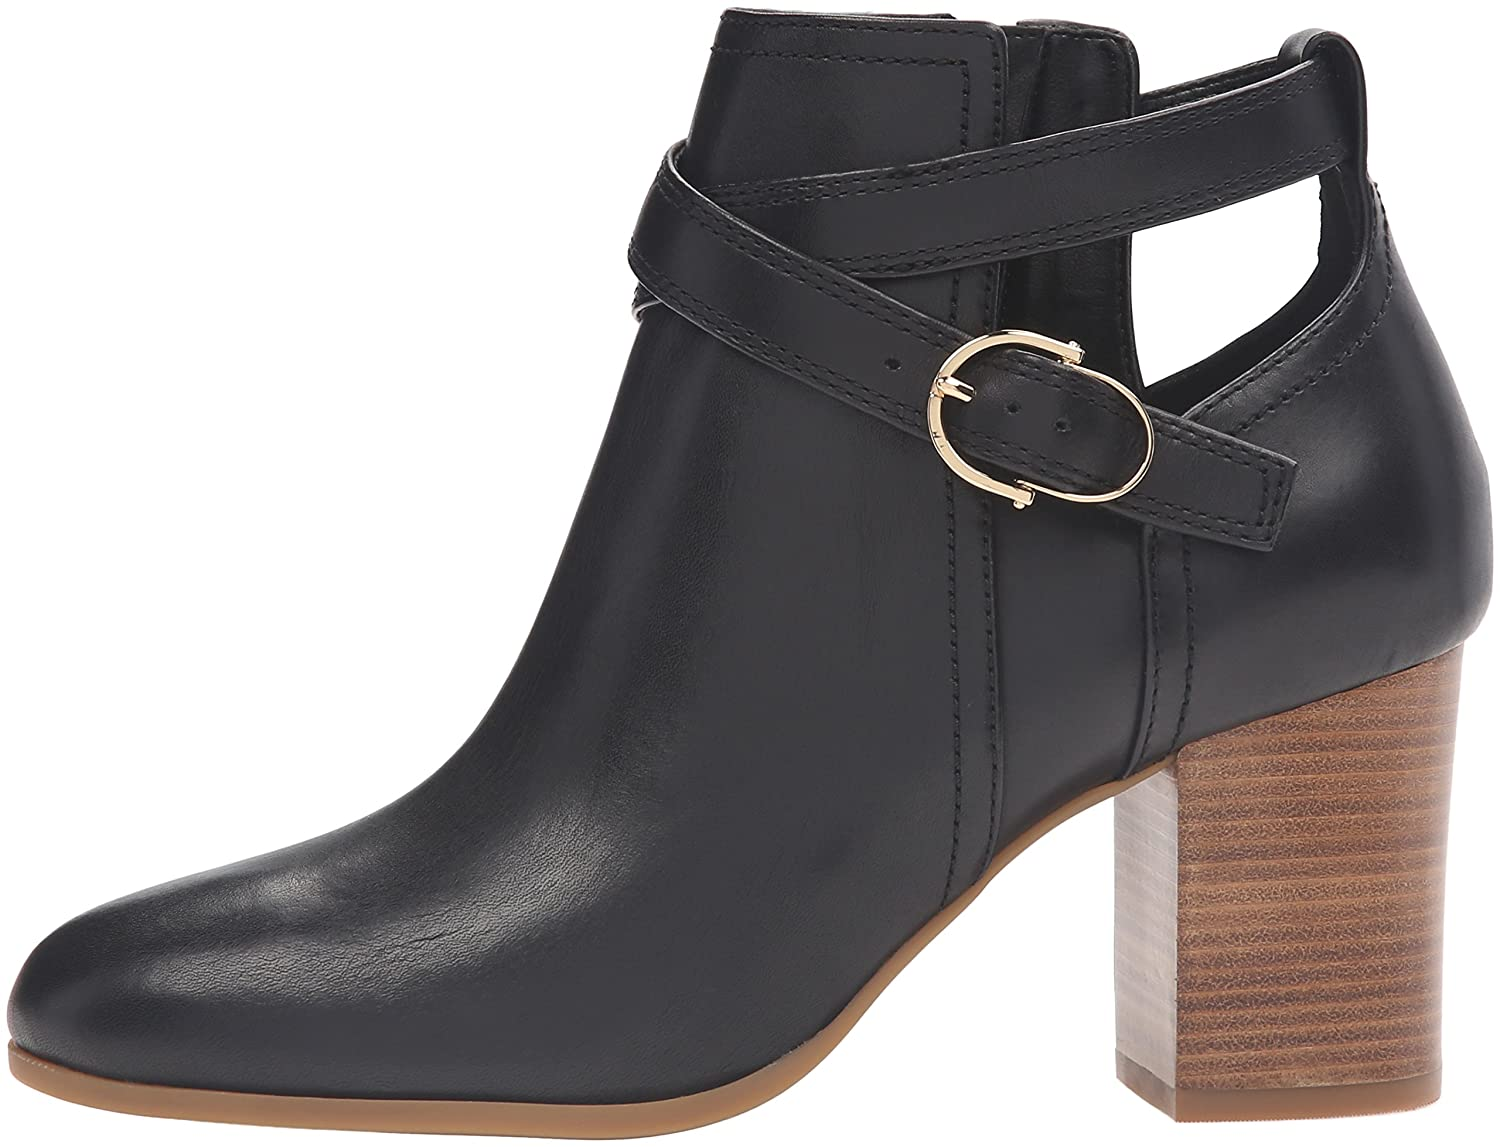 Cole Haan Women's Bonnell Ankle Bootie B01FX4PC2I 8.5 B(M) US|Black Leather